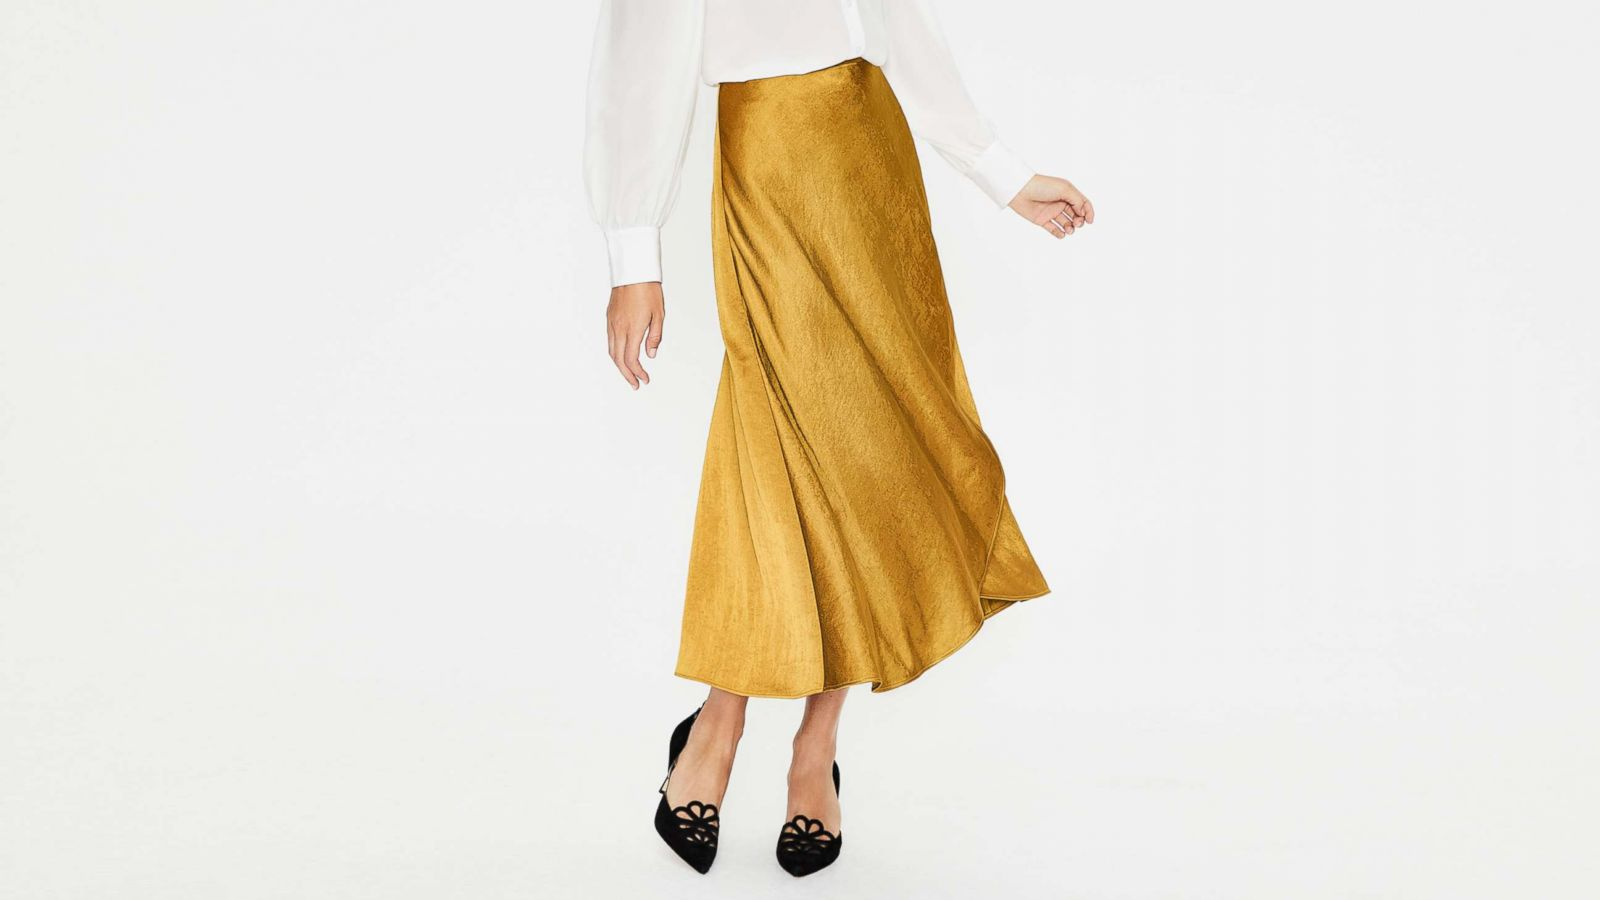 41d02ef6d Midi skirts are easy to incorporate into your daily wardrobe. Pictured: The  Epsom Midi